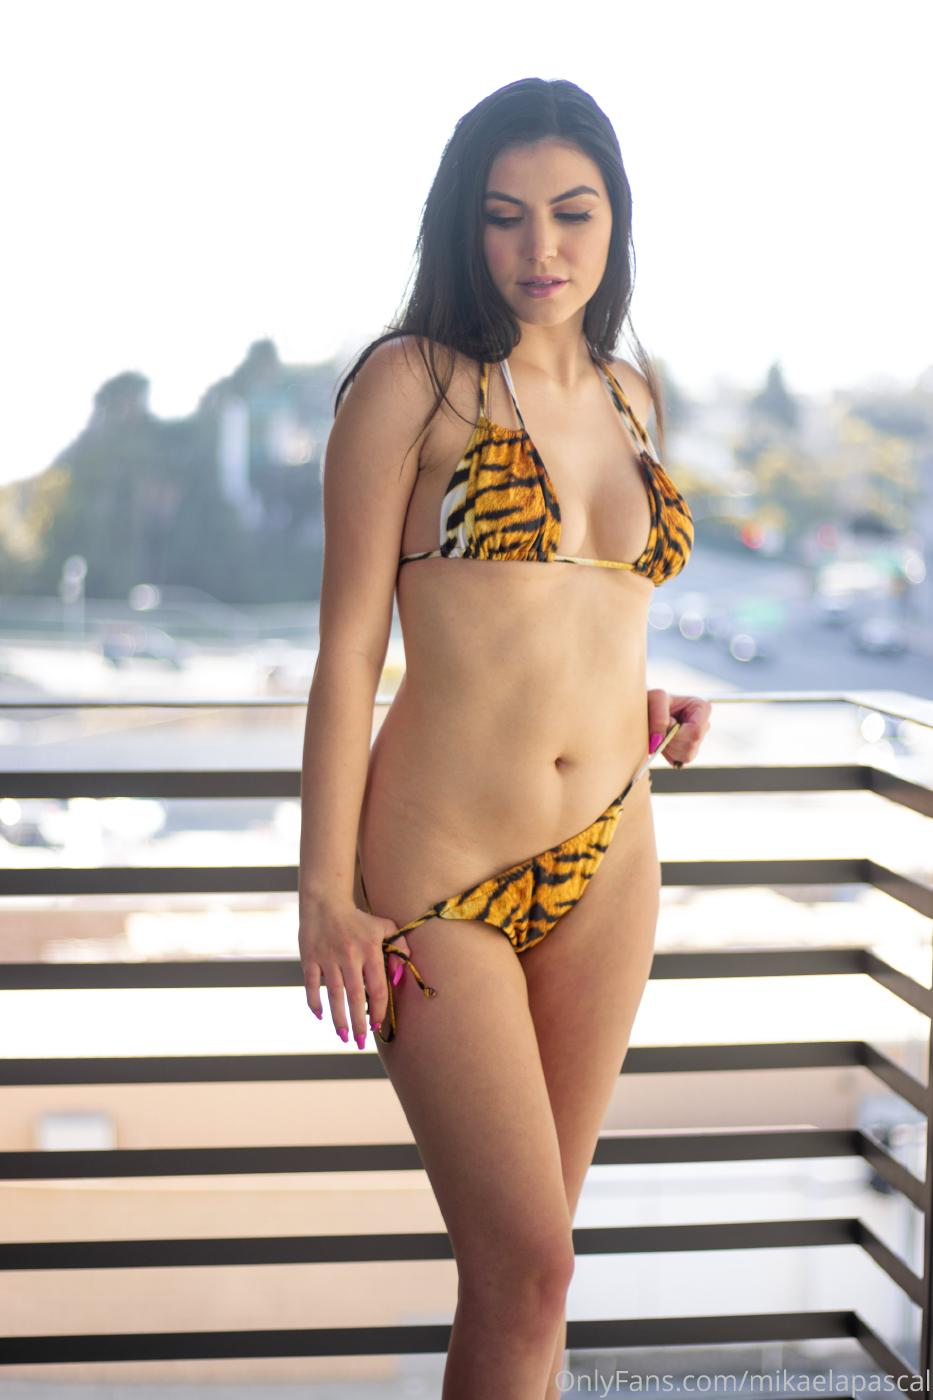 Mikaela Pascal Nude Tiger Bikini Photos Leaked 0004